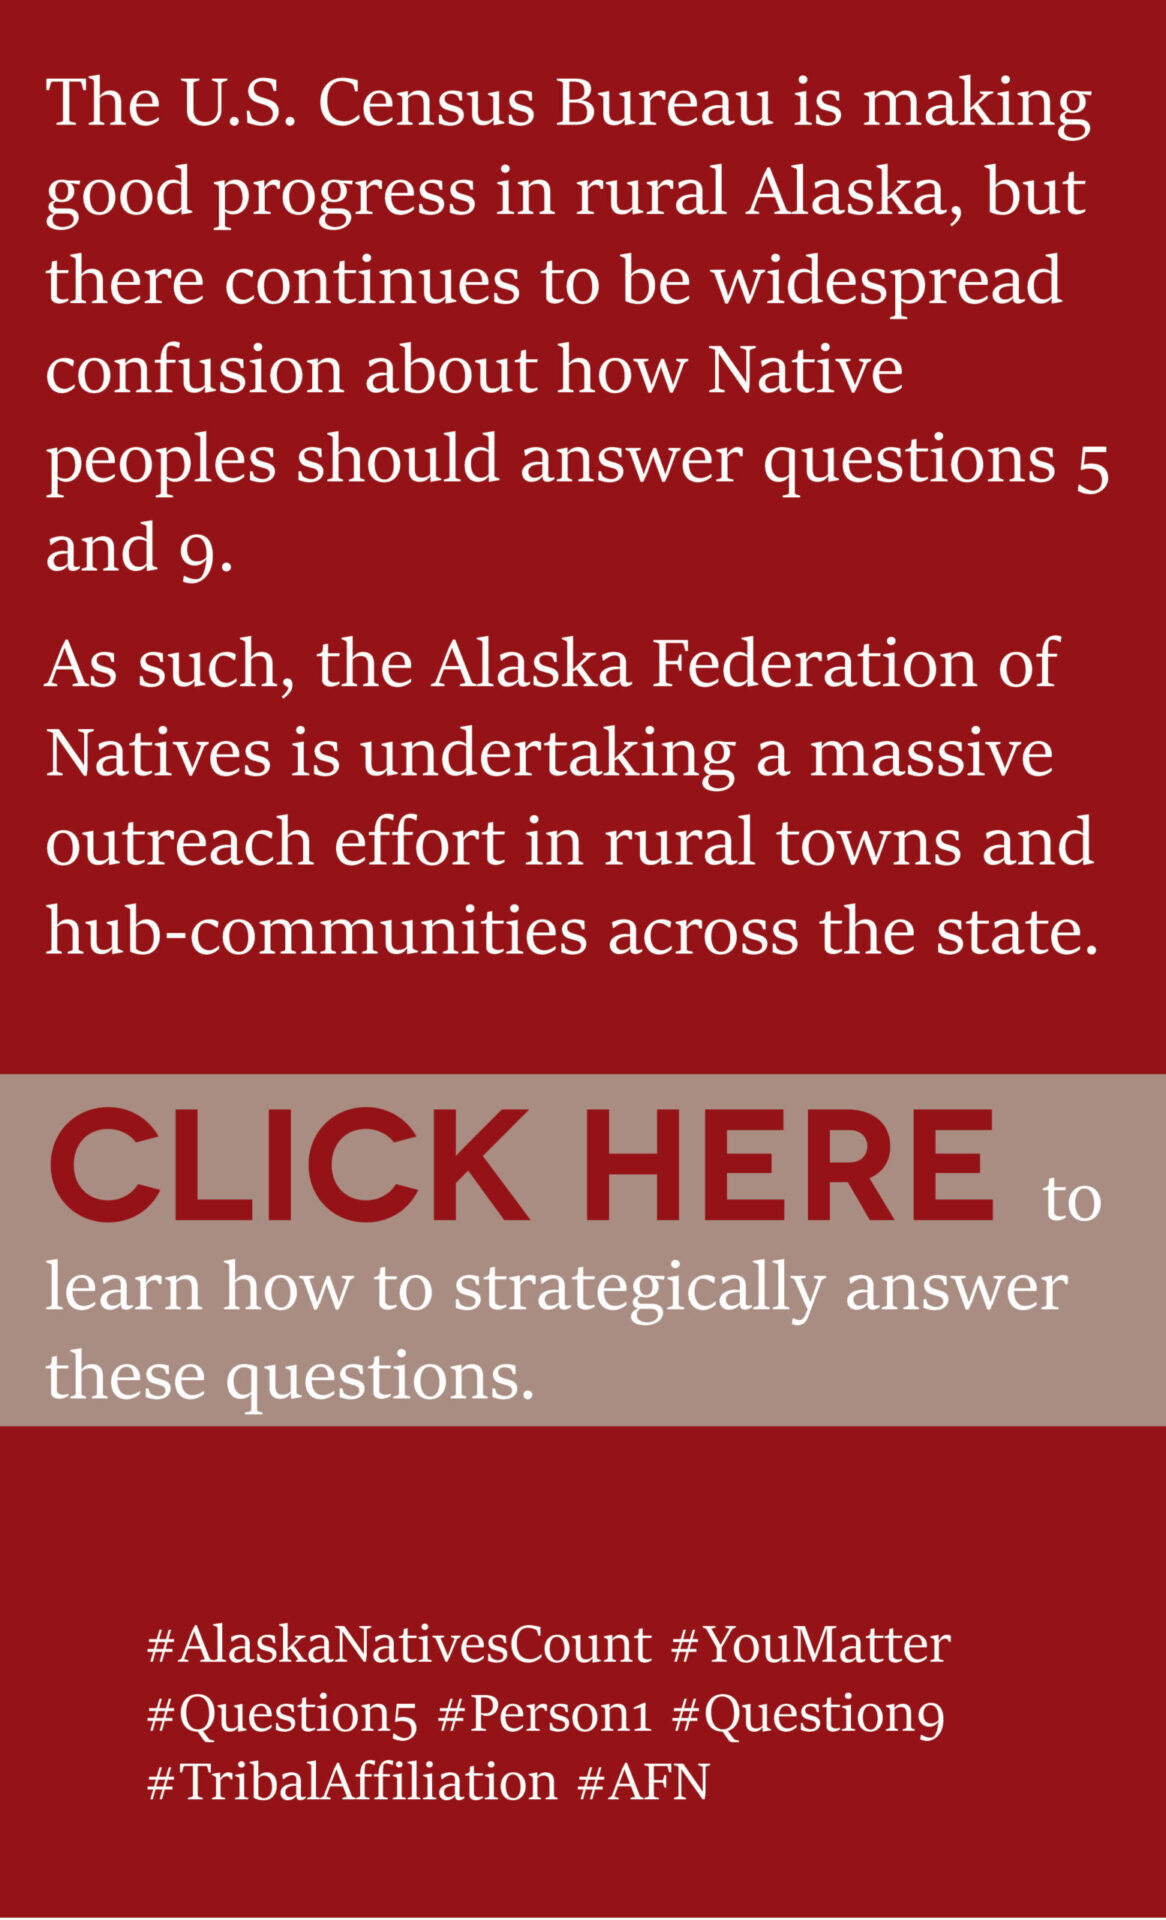 www.nativefederation.org/2020census